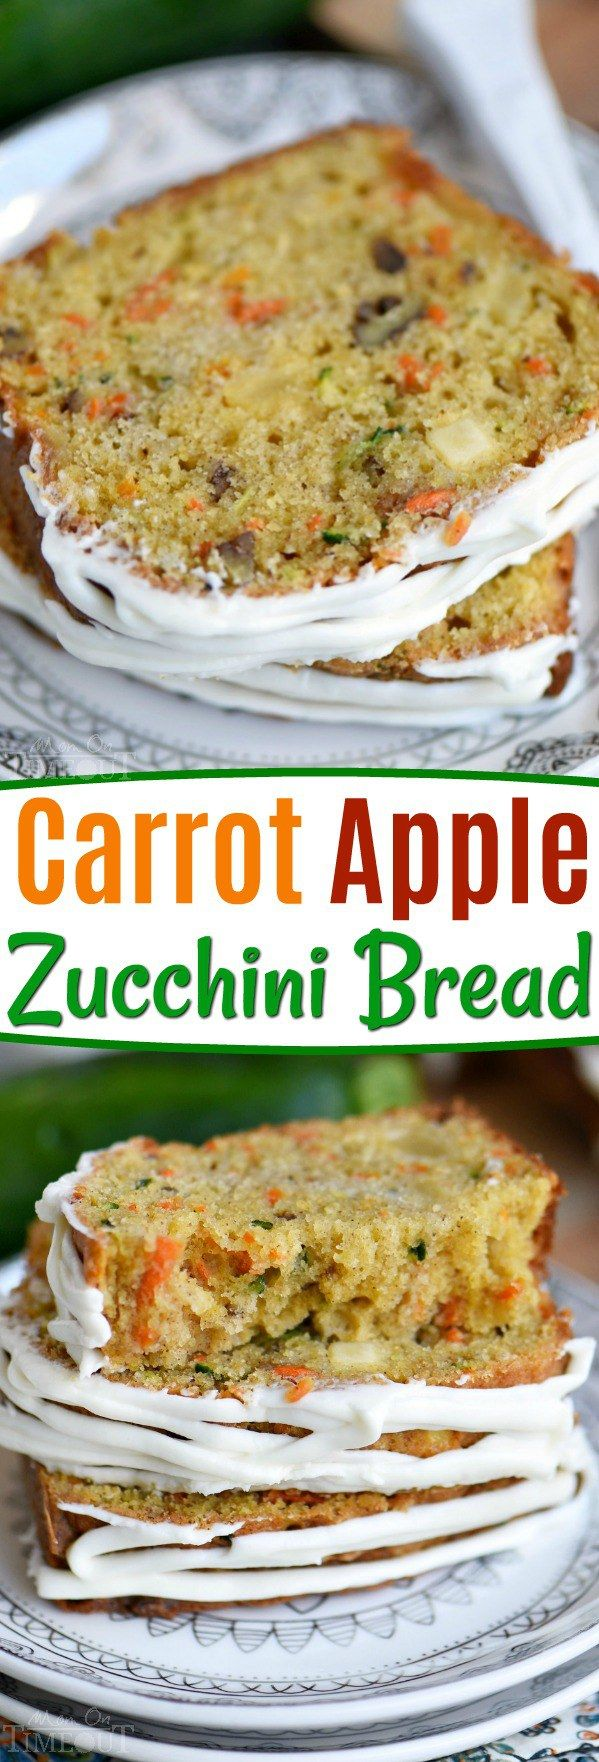 Carrot Apple Zucchini Bread is part of Zucchini bread recipes - Fresh orange juice in the Carrot Apple Zucchini Bread recipe makes it moist and flavorful